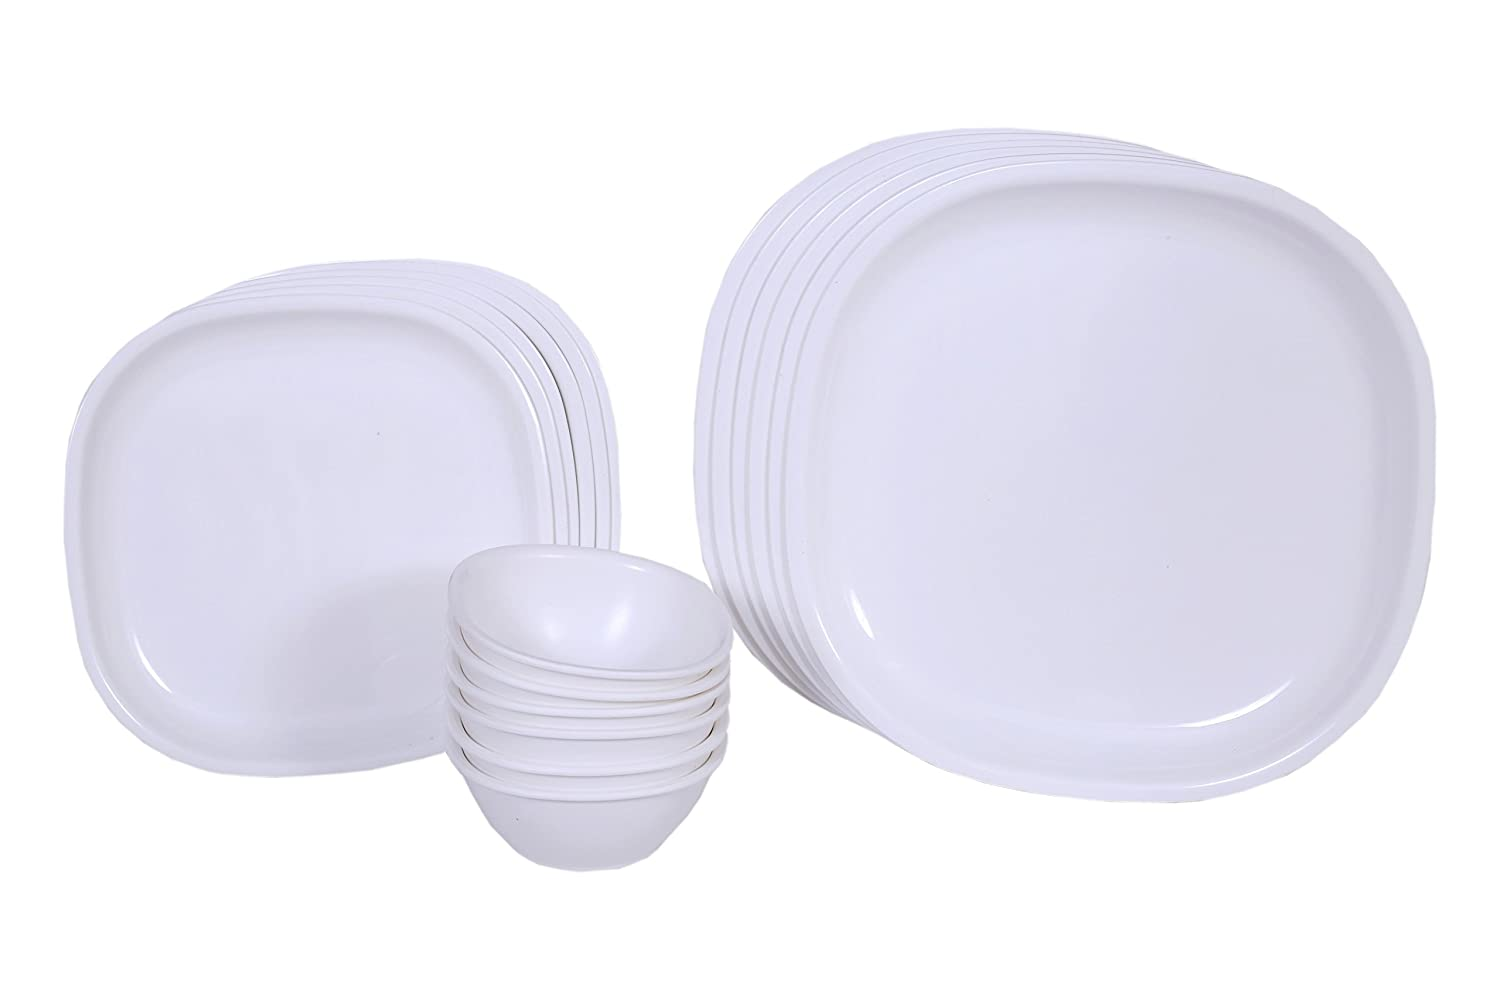 Buy Signoraware Square Dinner Set 23 Pieces White Online At Low Tupperware Open House Oh Serving Prices In India